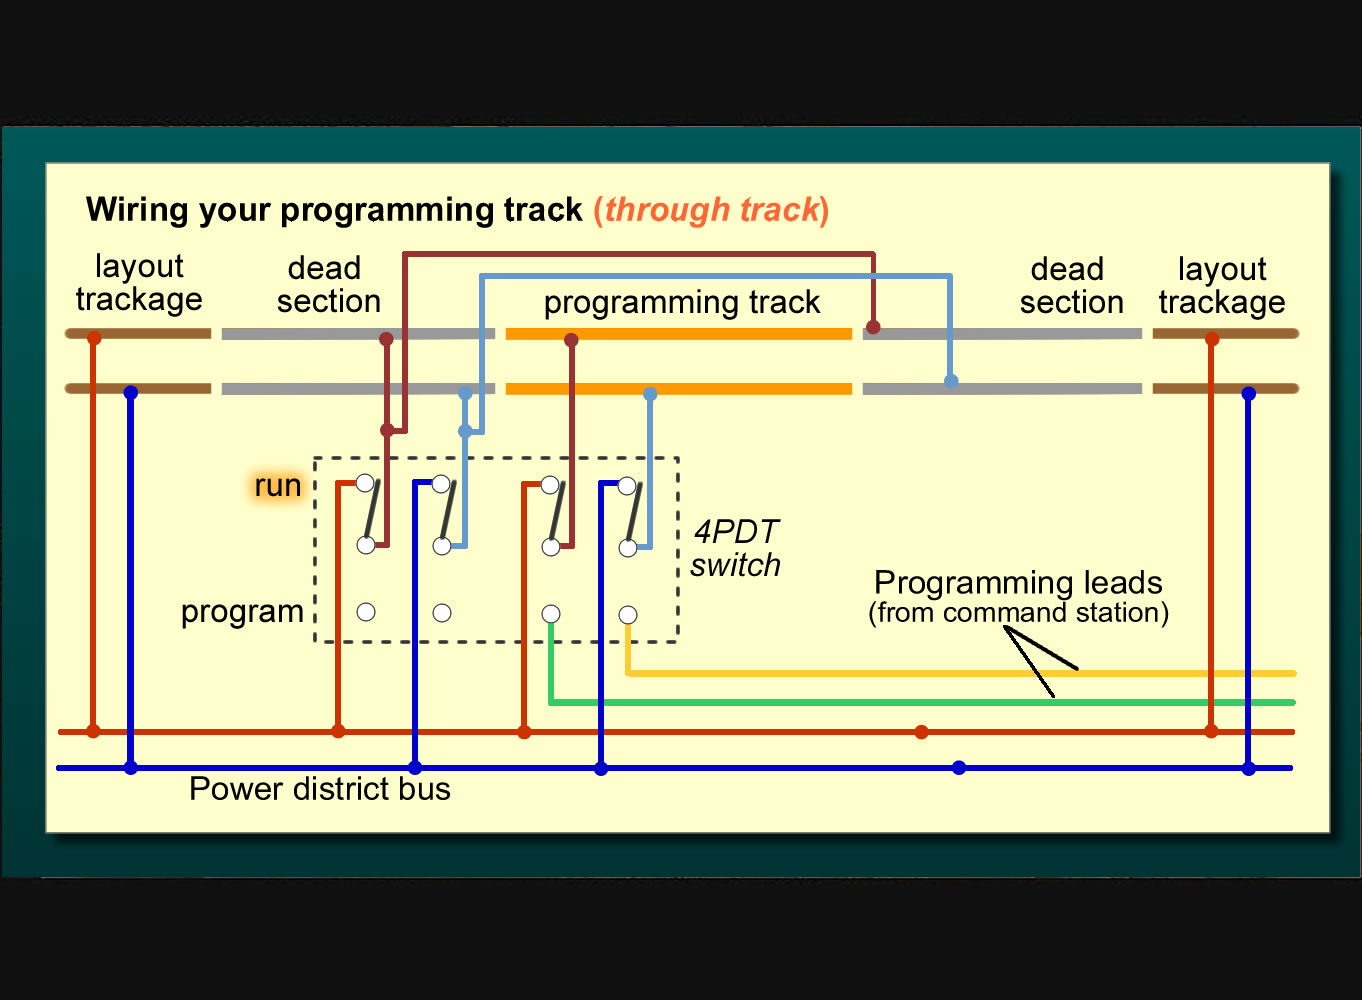 4 Way Switch Wiring Diagram moreover Model Railroad Layout Wiring DCC further Model Railroad Yard Diagrams also Boston T Subway Map as well HO Scale Double Crossover Track. on railroad yard schematic diagrams